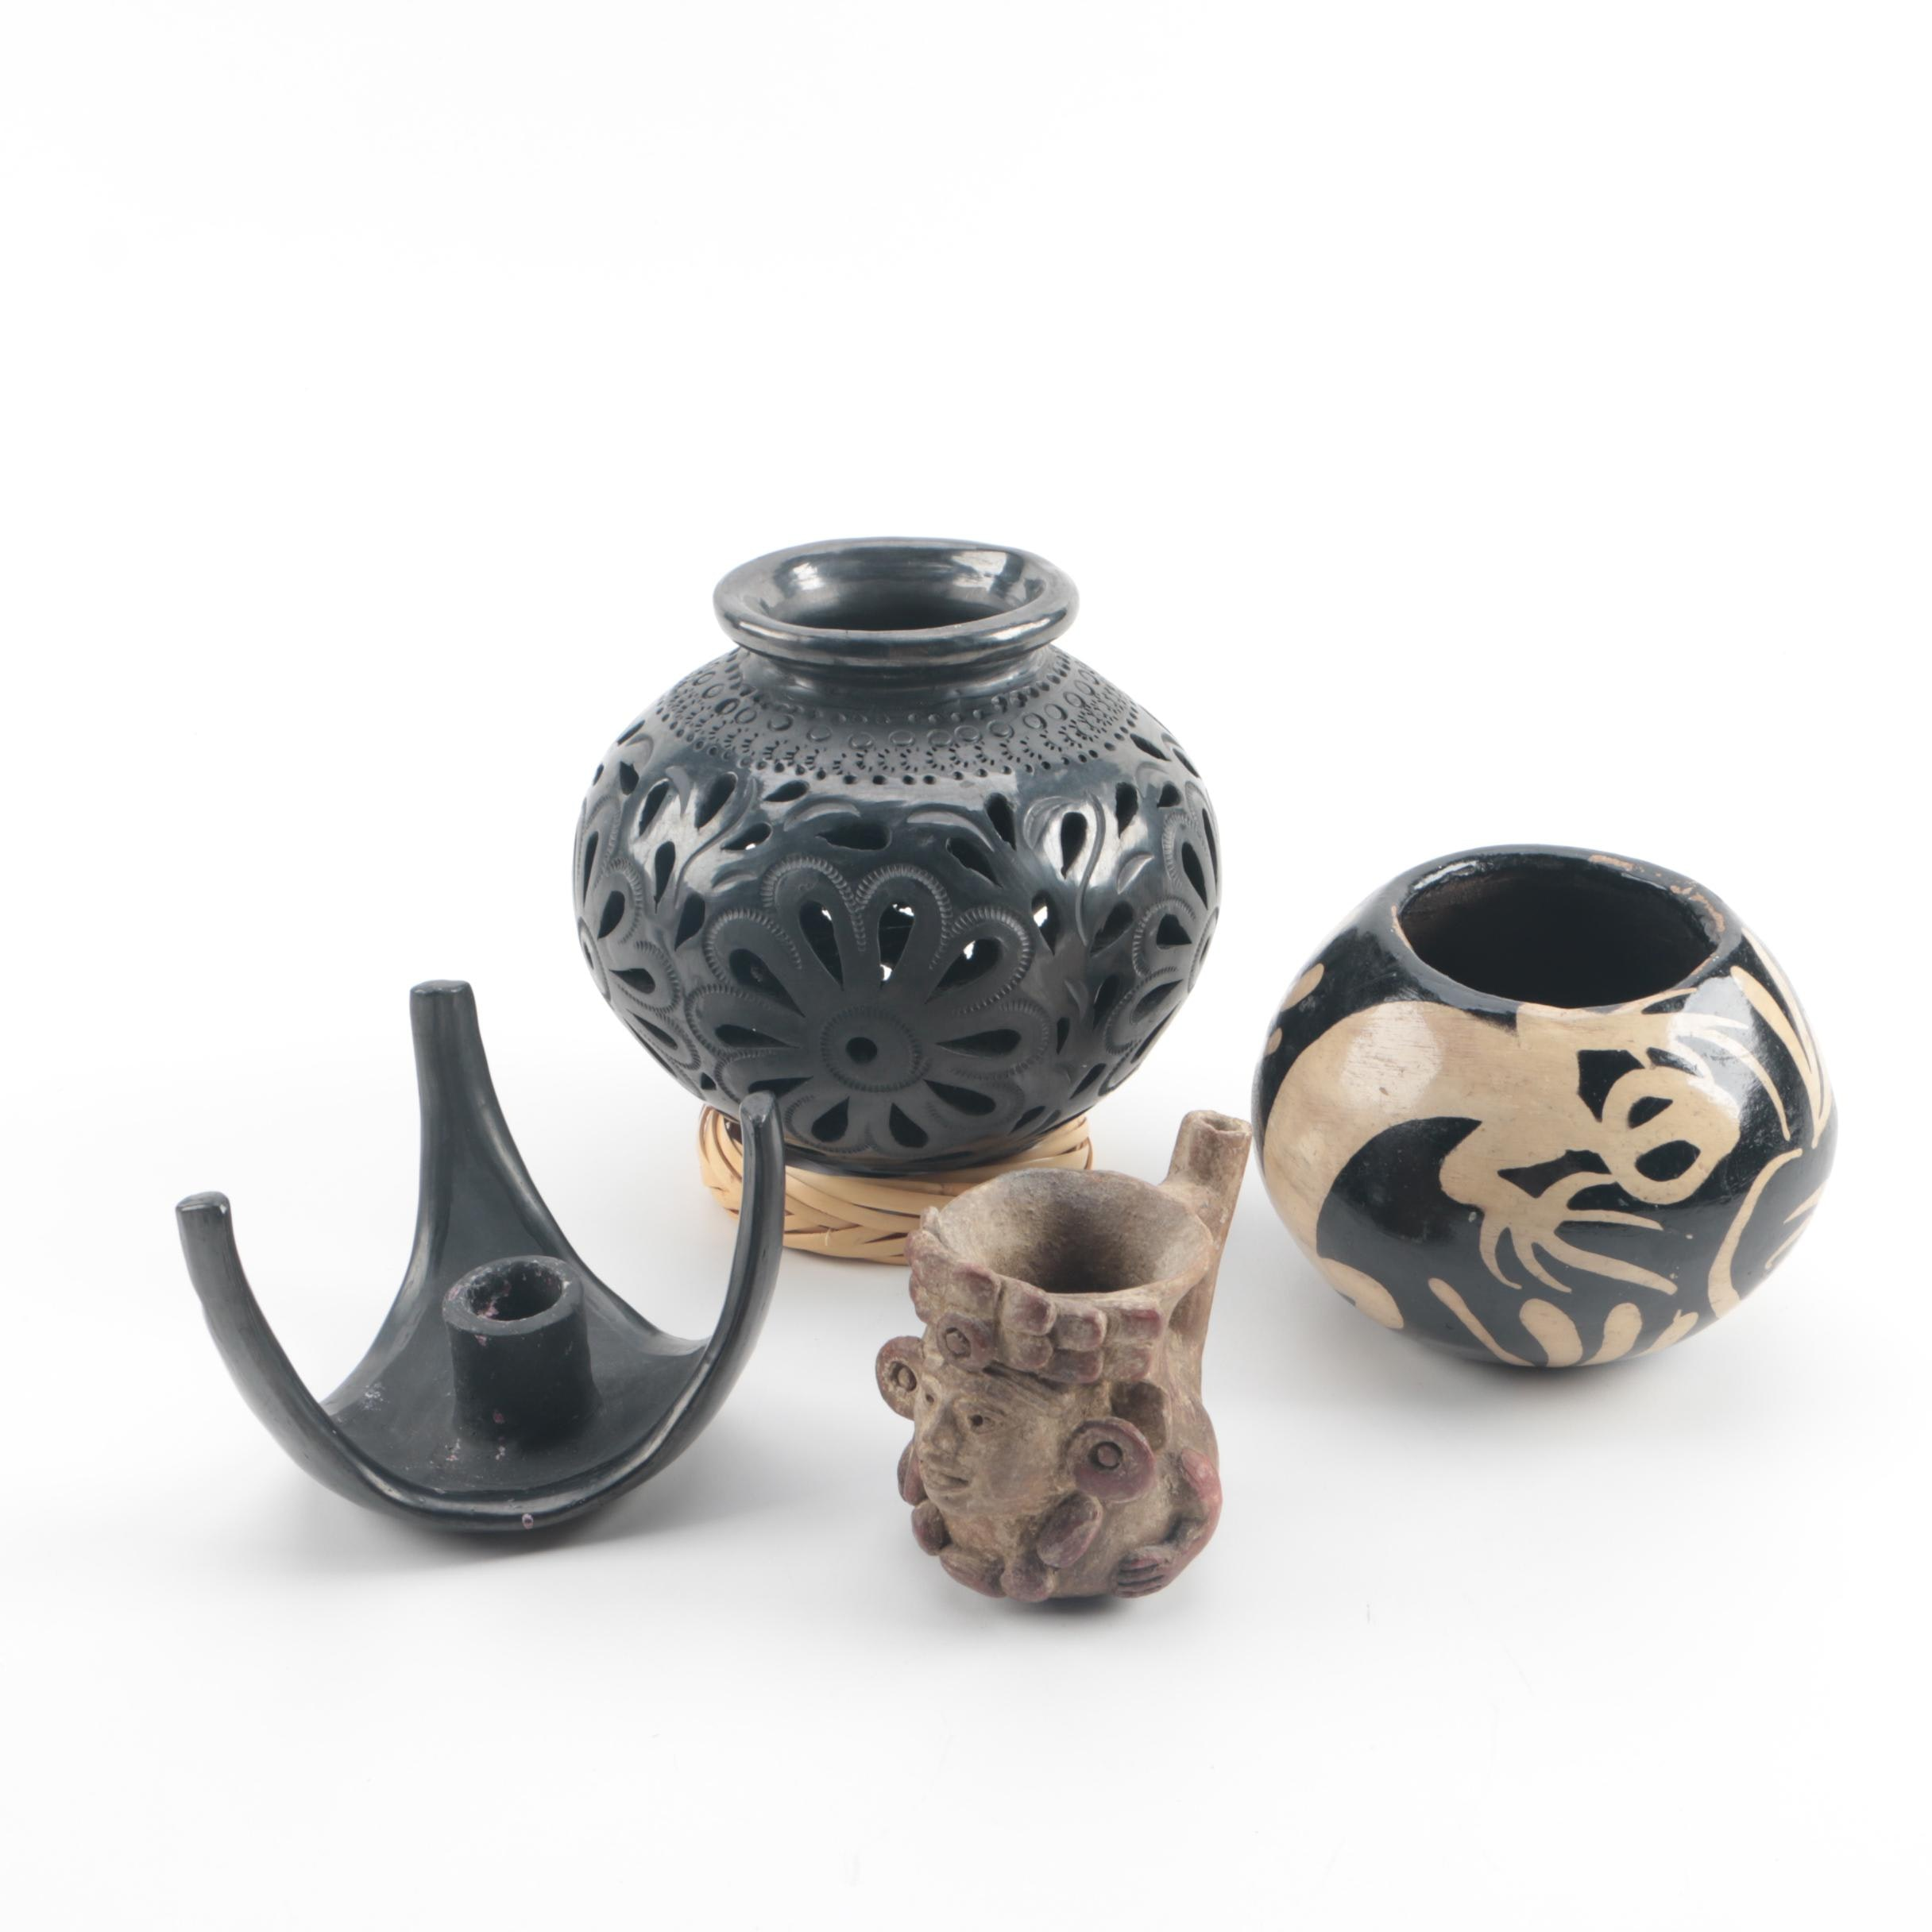 Doña Rosa Candlestick Holder, Mayan Inspired Pipe, and Mexican Pottery Vessels